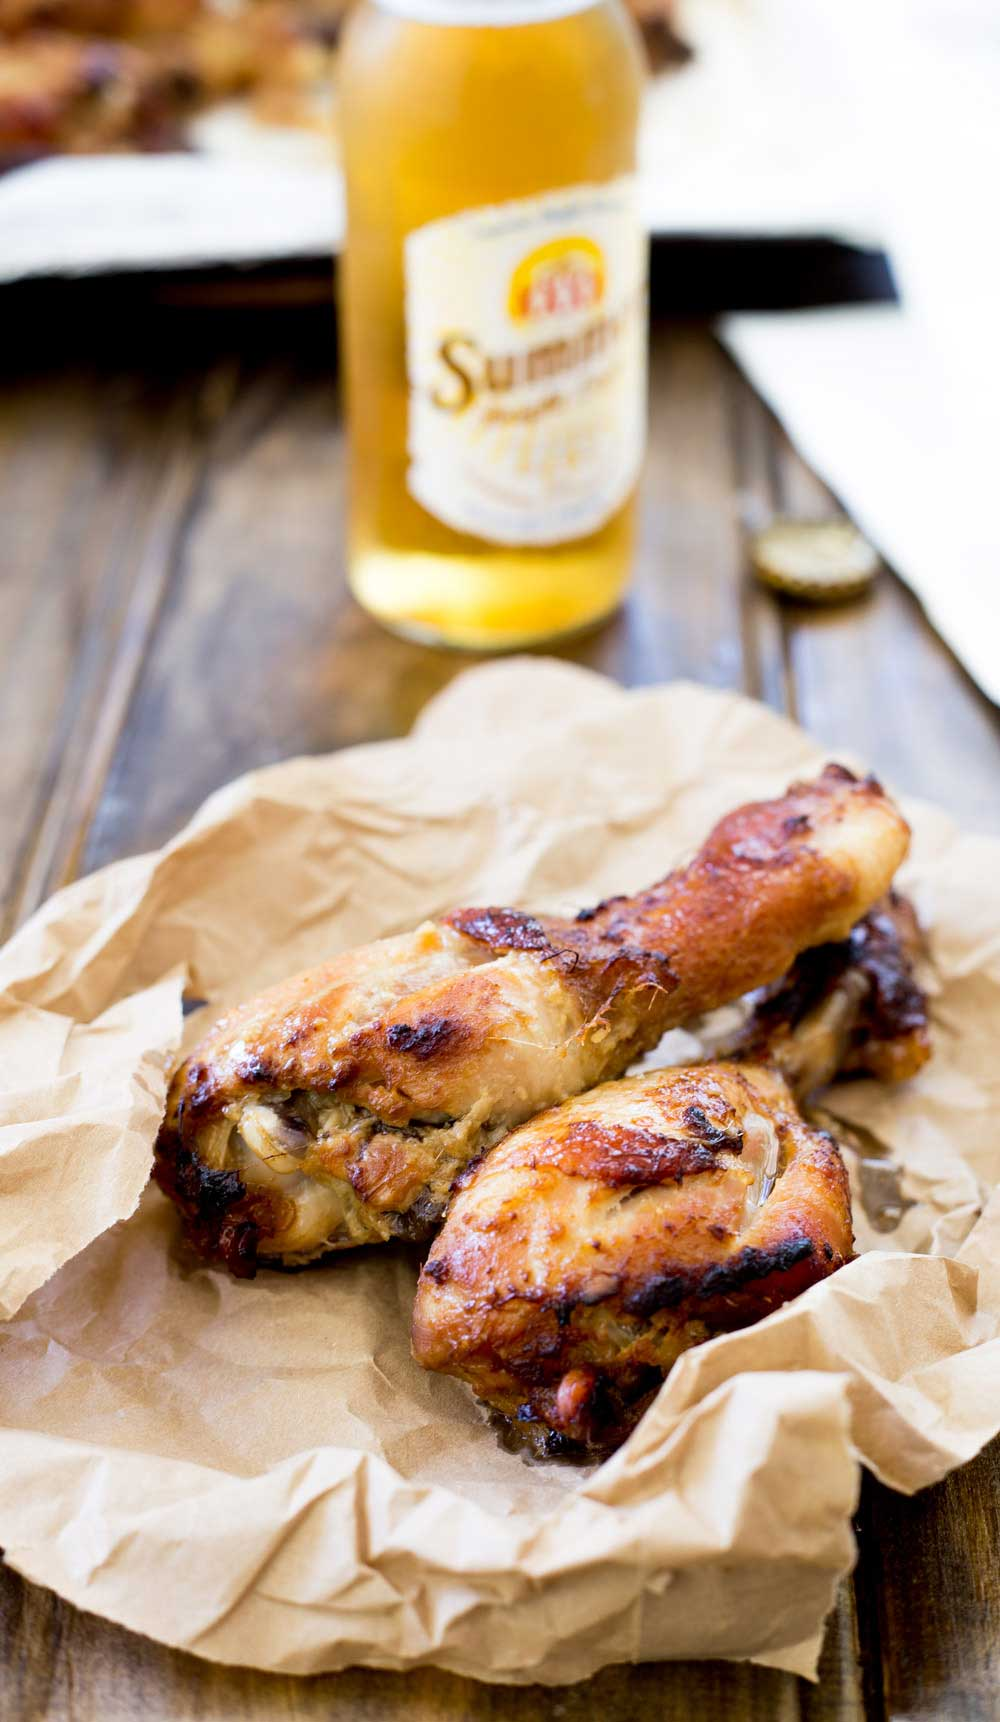 These Indonesian Ginger Chicken Drumsticks are marinated in a rich gingery glaze and then grilled to a slightly charred perfection. Served hot or cold these drumsticks are a great way to feed a crowd.